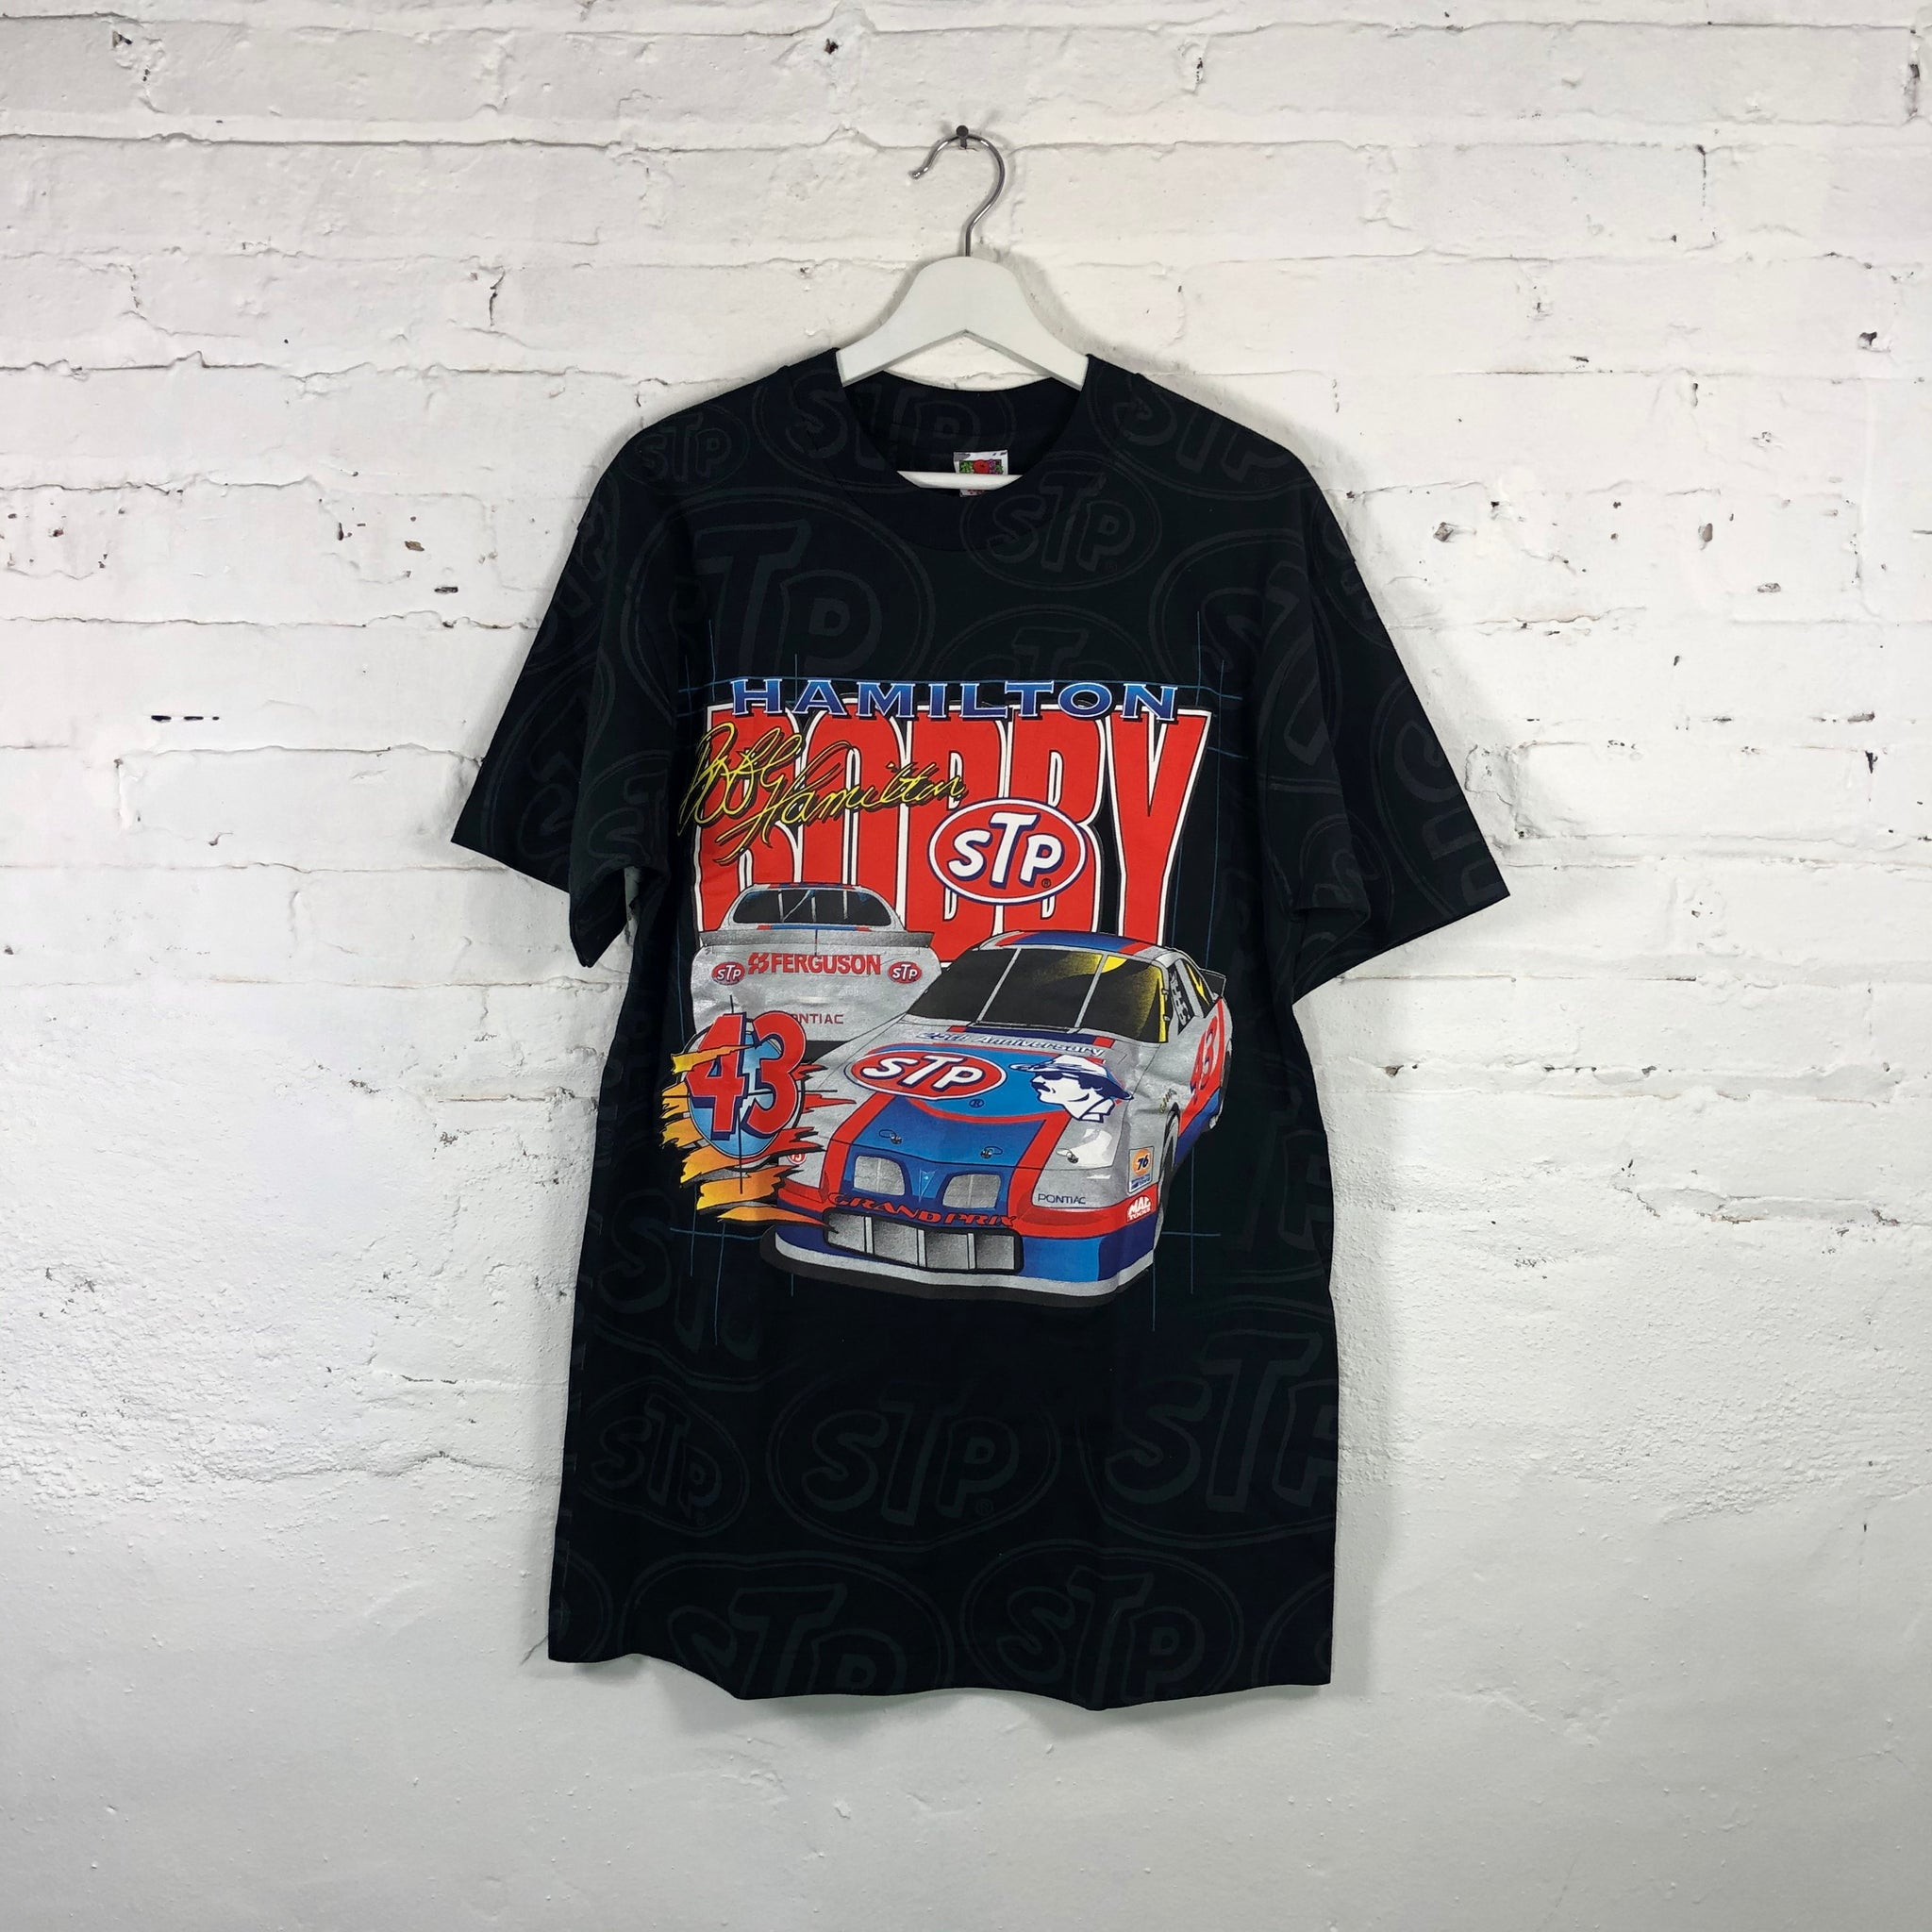 All over Print Bobby Hamilton STP Racing Team T-shirt